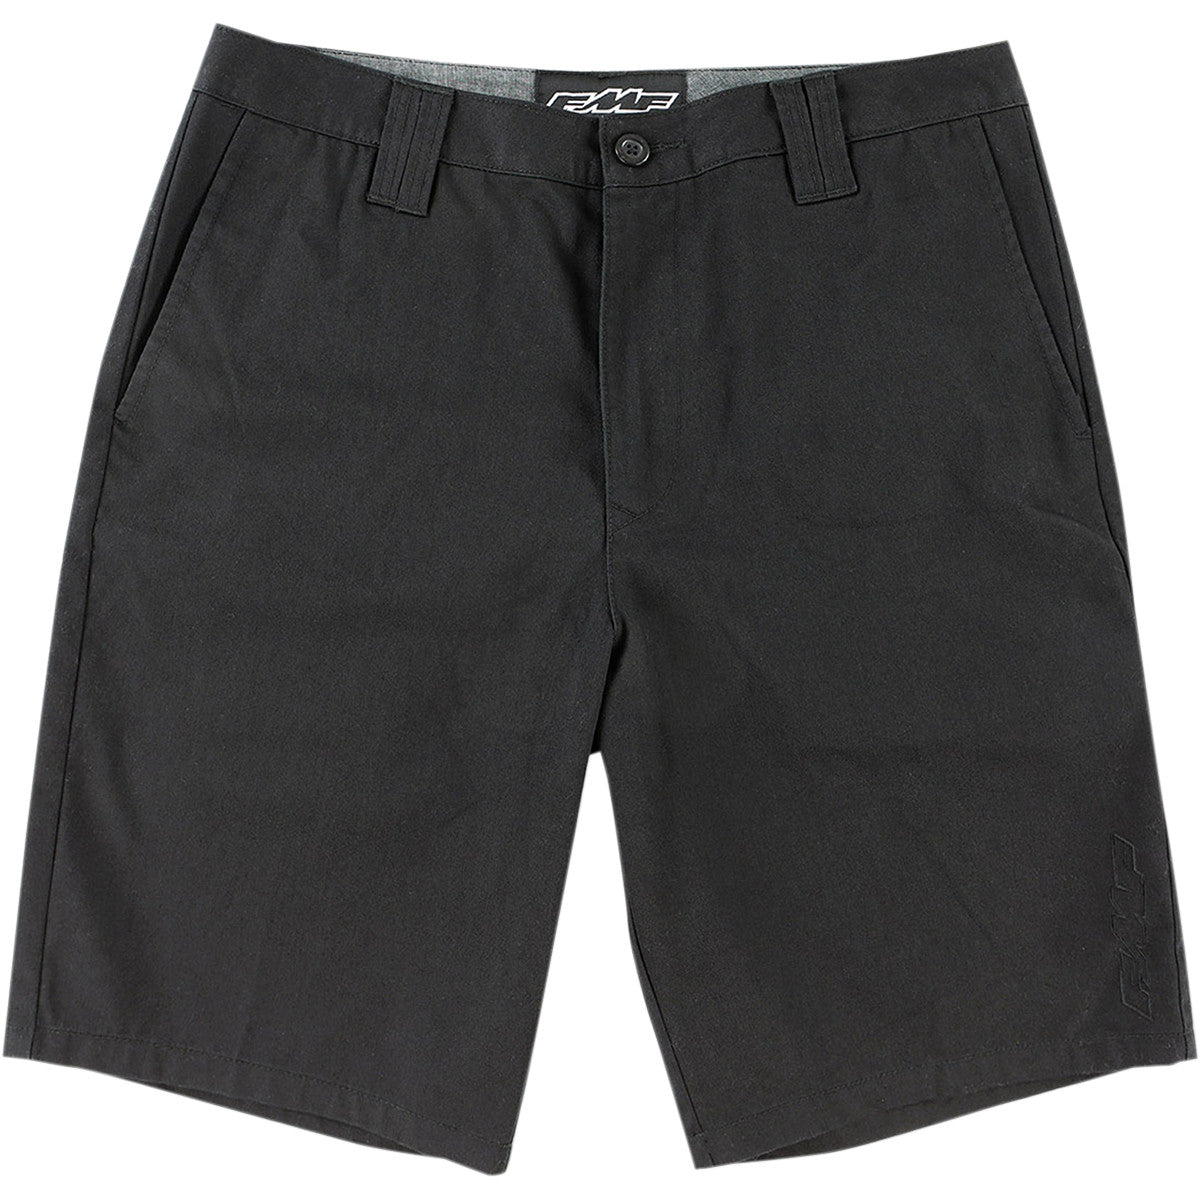 Fmf Apparel All Time Shorts